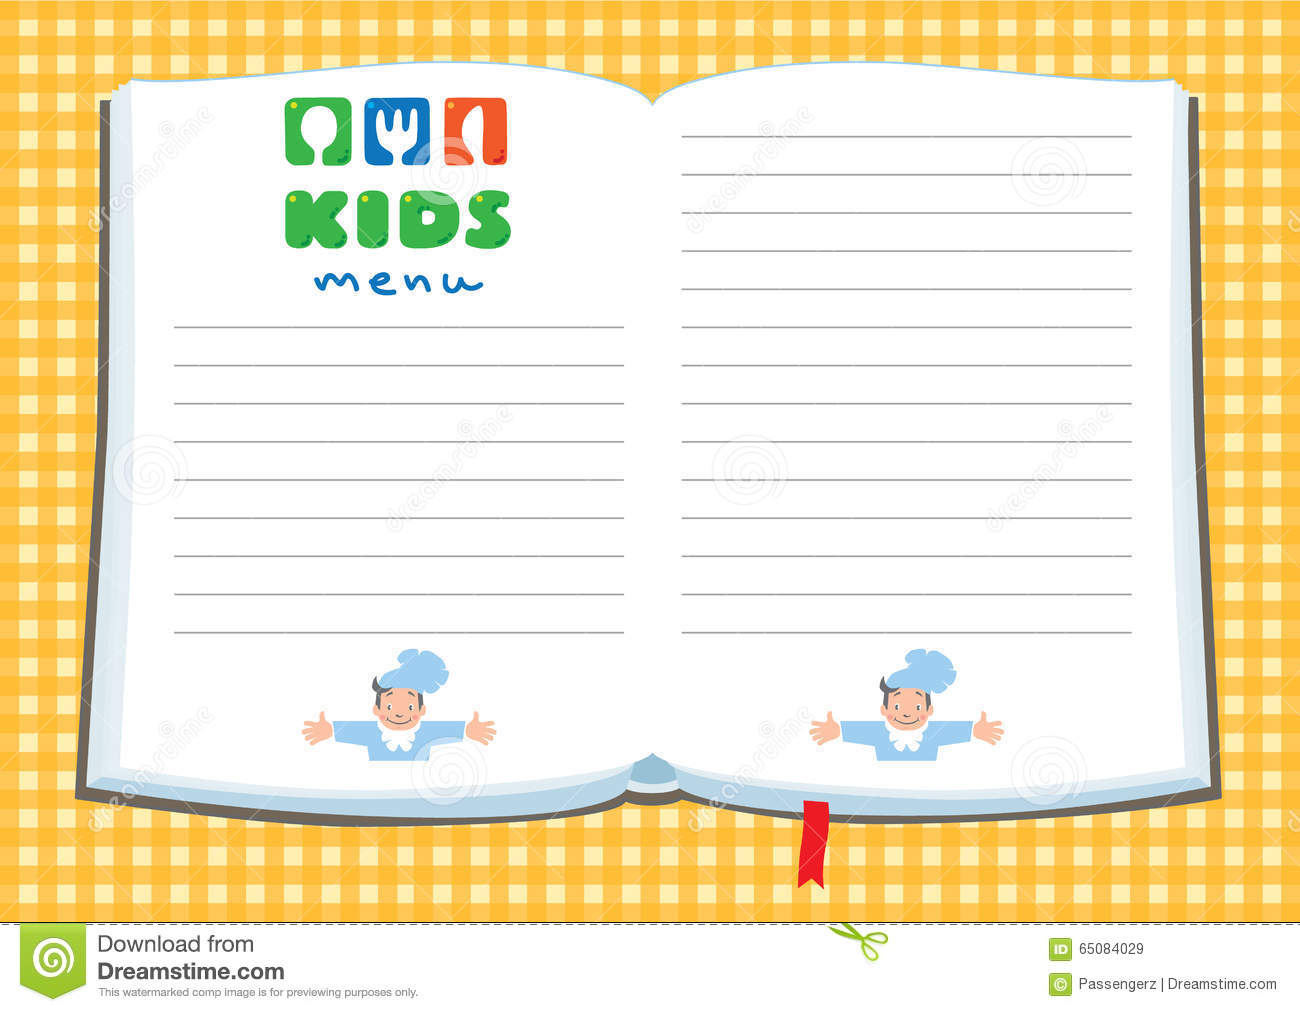 Design Template Background For Kids Menu. Print, Kitchener.  Free Kids Menu Templates